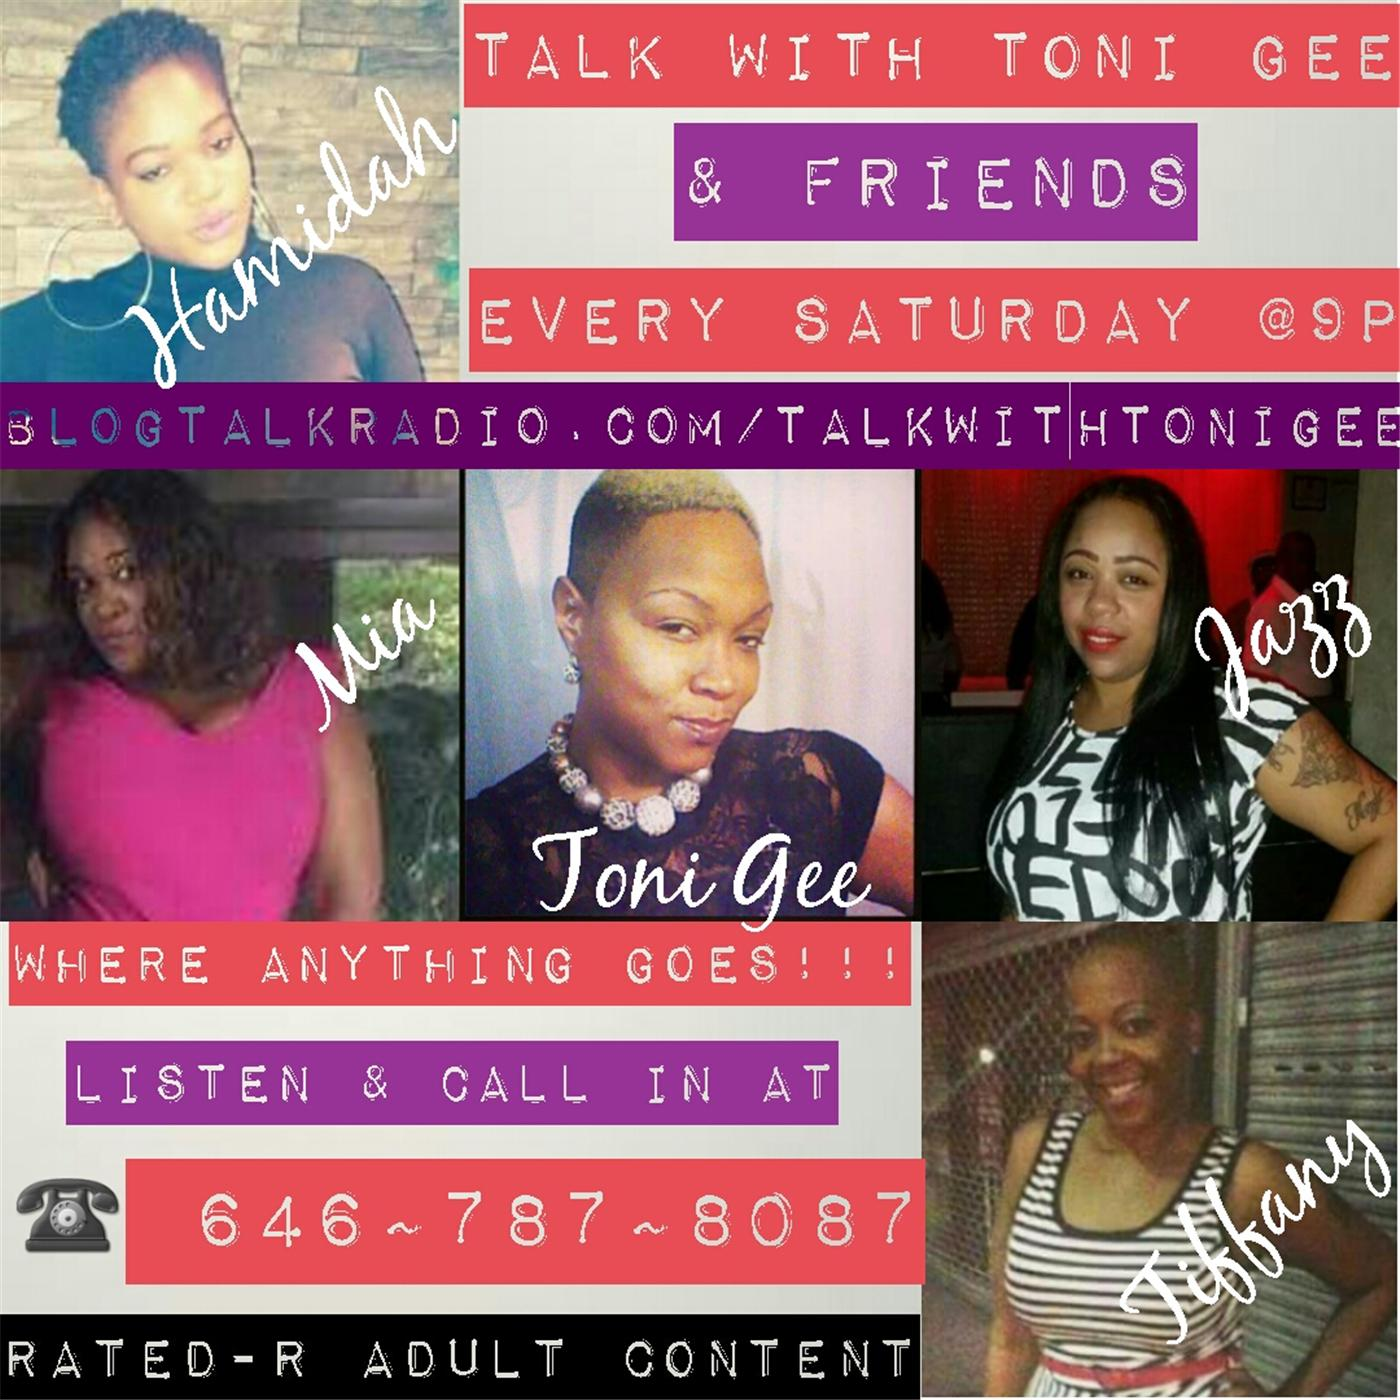 Talk With Toni Gee and Friends